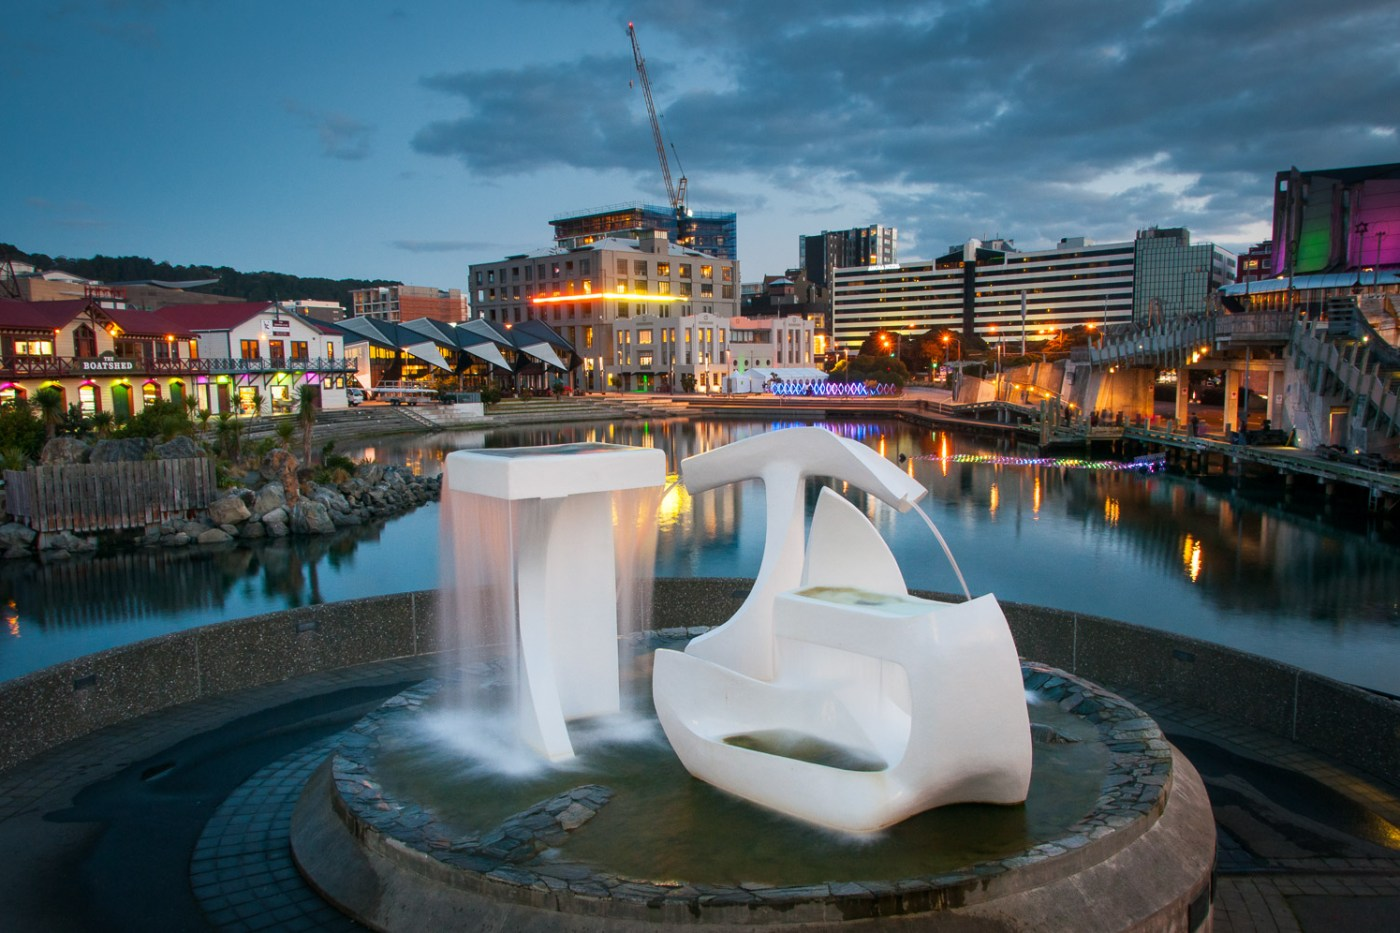 Albatross Sculpture at night, Wellington